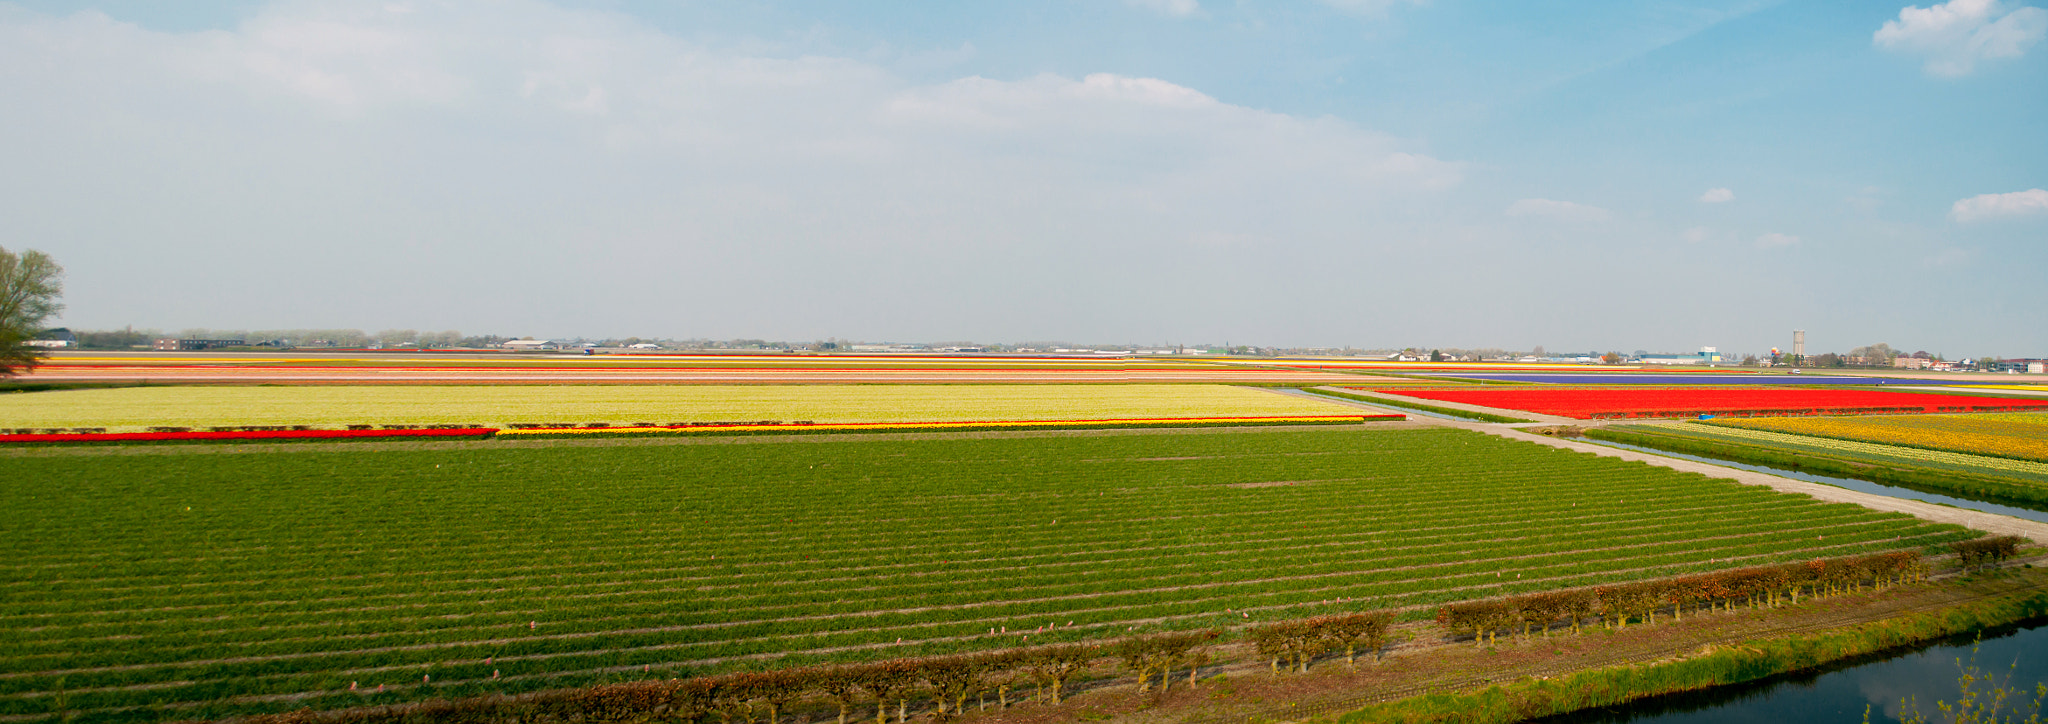 Photograph Multicolor Holland's fields by Glafira Kushnir on 500px